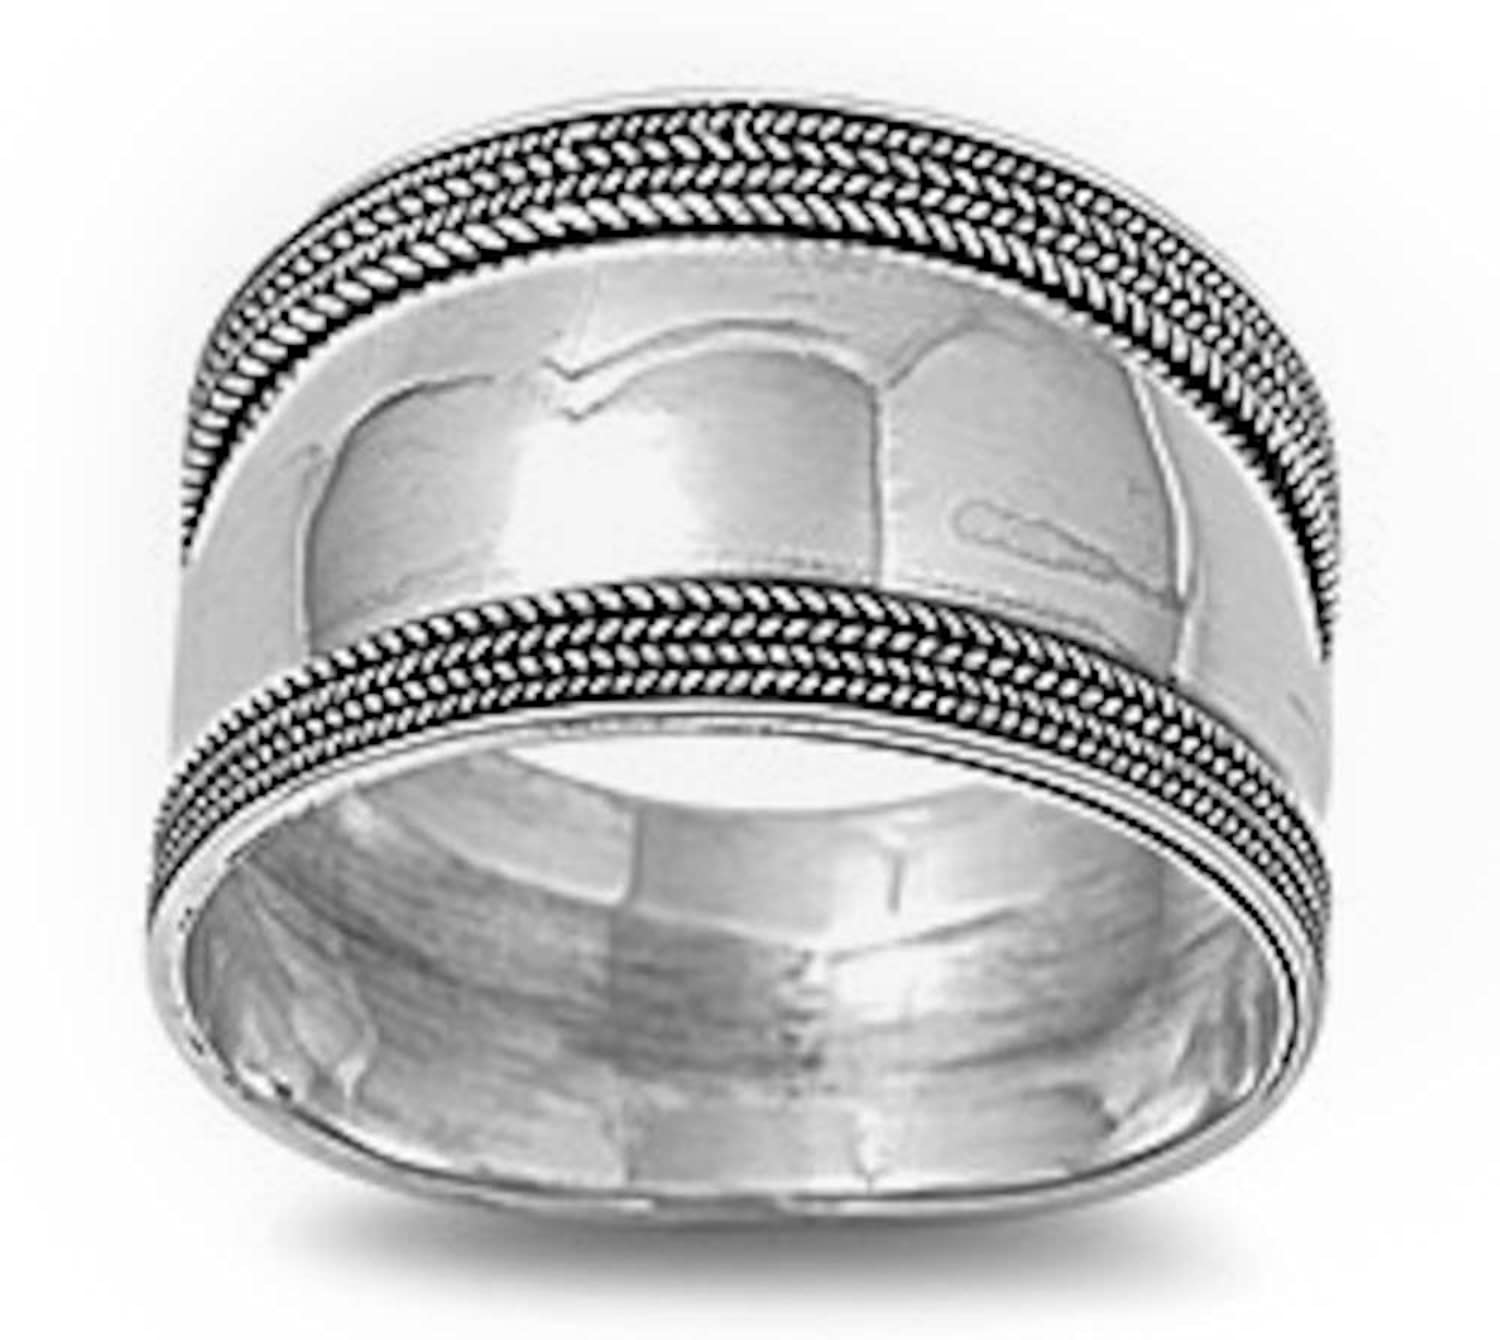 Solid Braided Bali Wide Band .925 Sterling Silver Ring Sizes 5-12